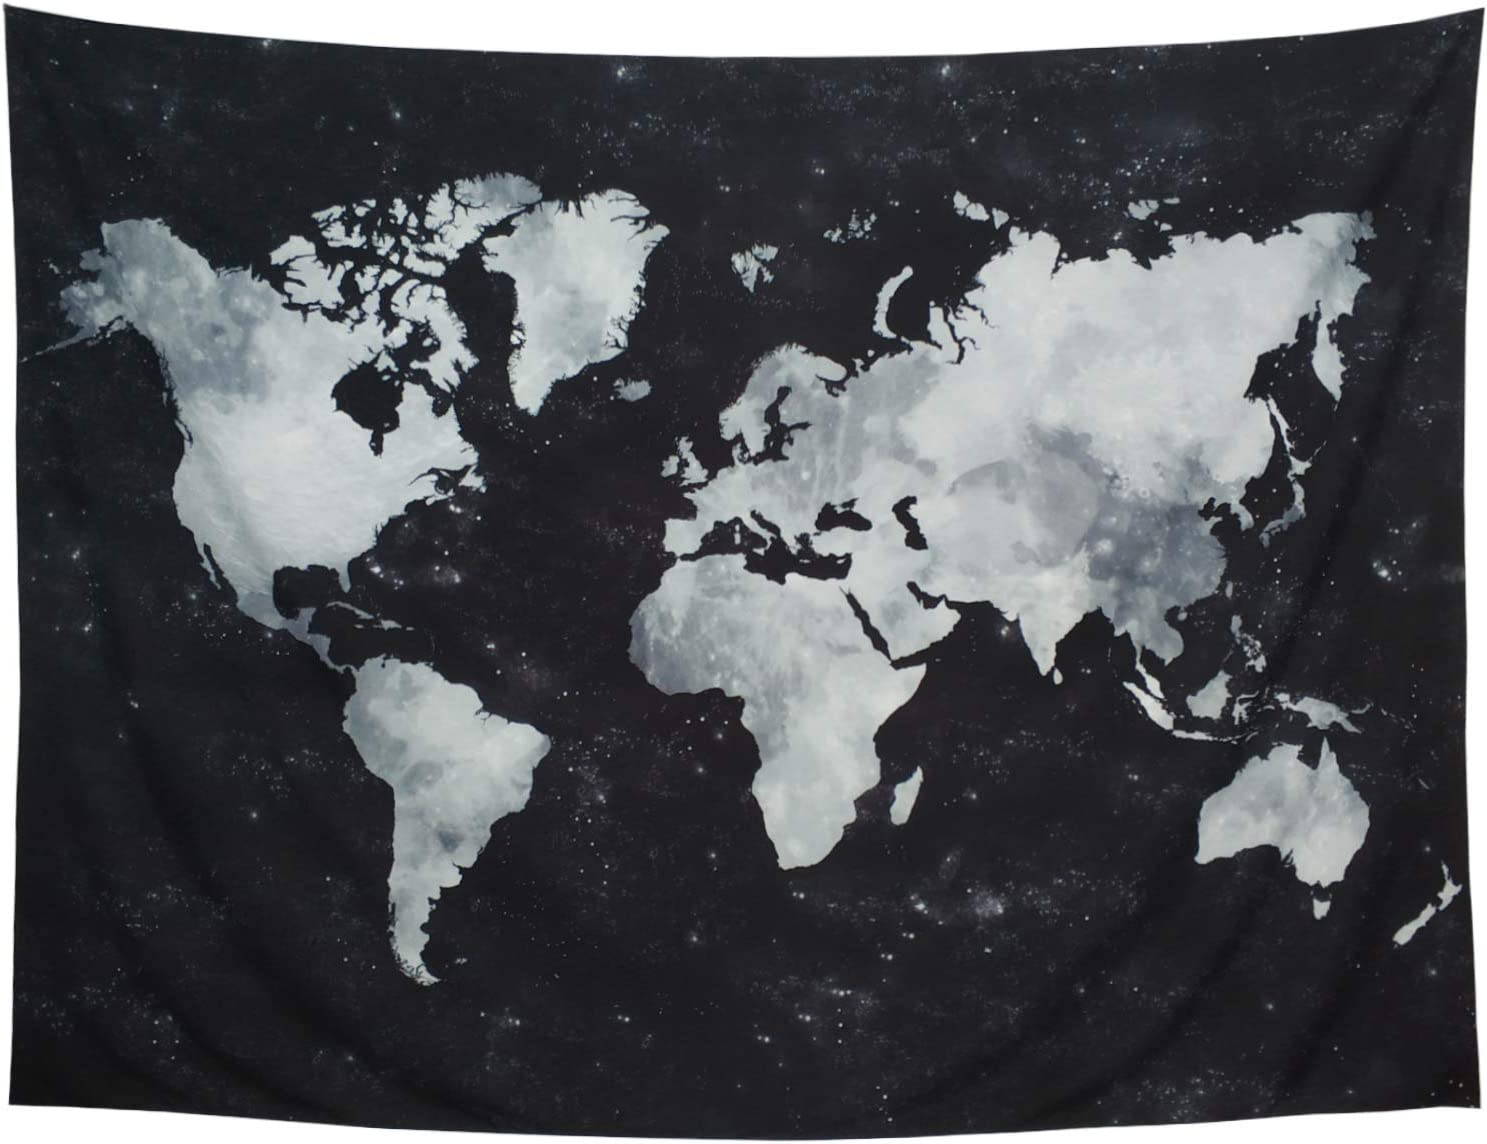 Ameyahud Starry Tapestry World Map Tapestry Apartment Essentials Black and White Tapestry Globe Constellation Galaxy Tapestry for Guys Dorm Posters (XL/70.8